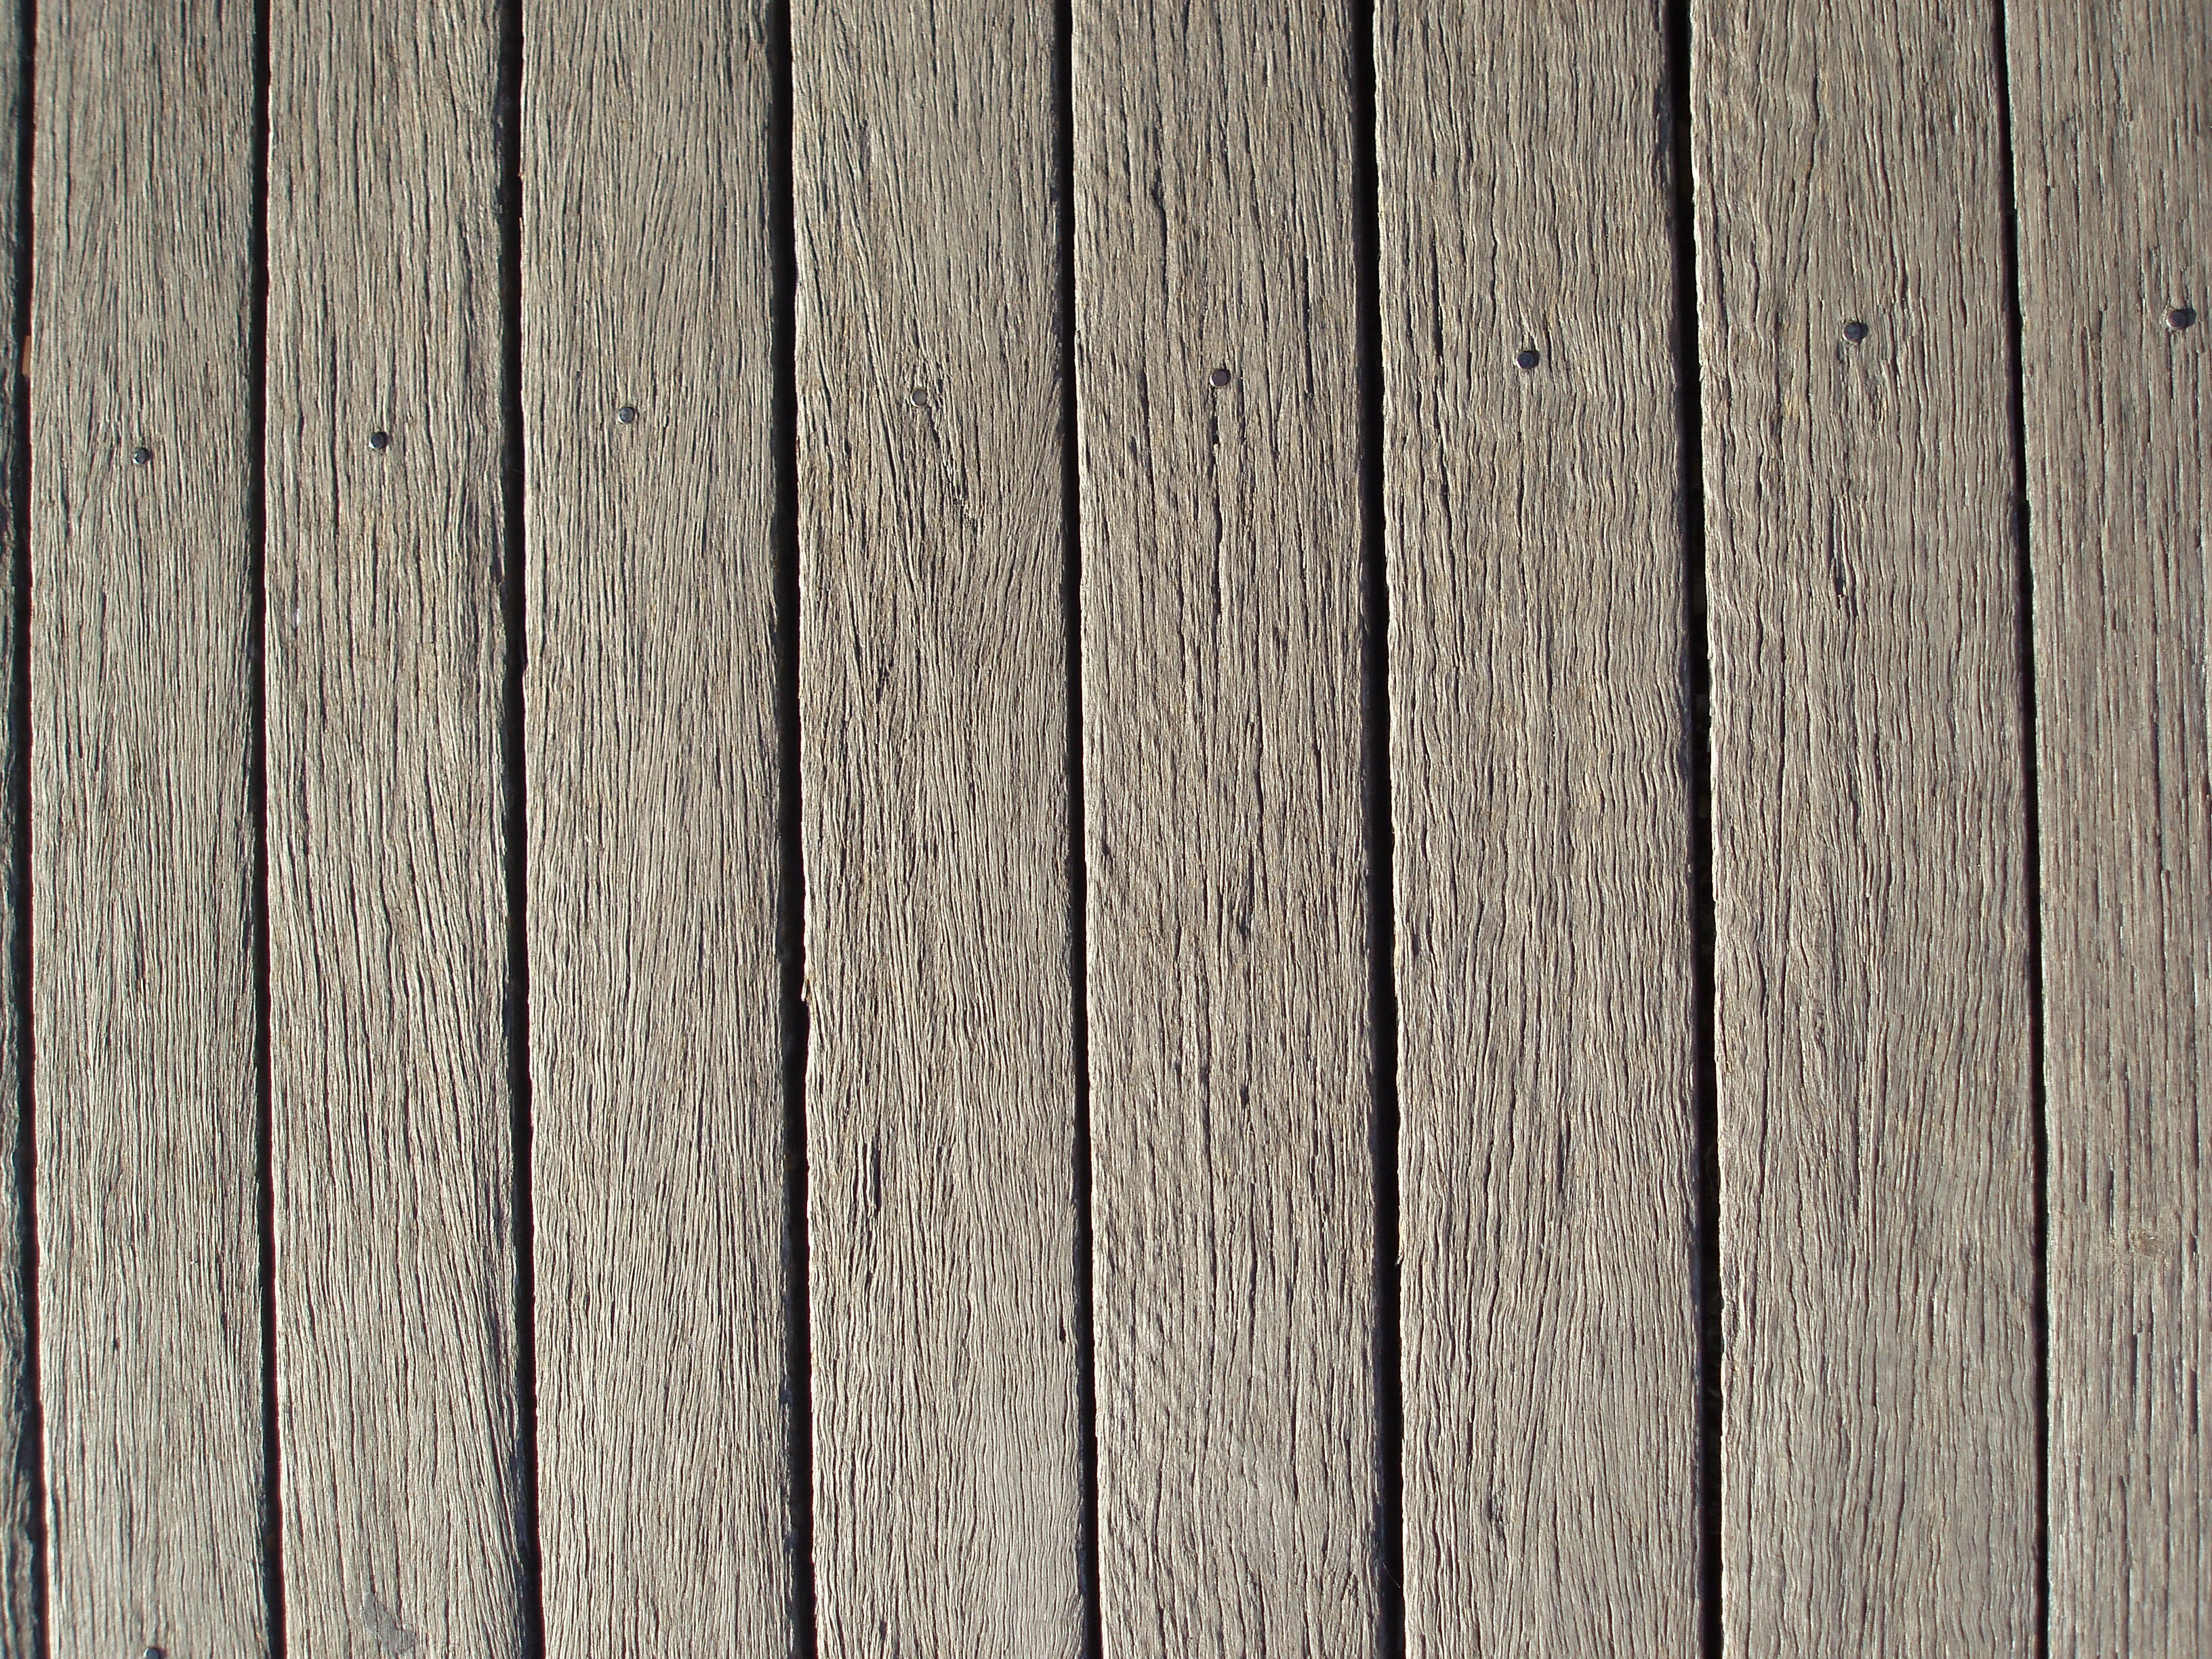 Wood decking planks free backgrounds and textures for Hardwood decking planks